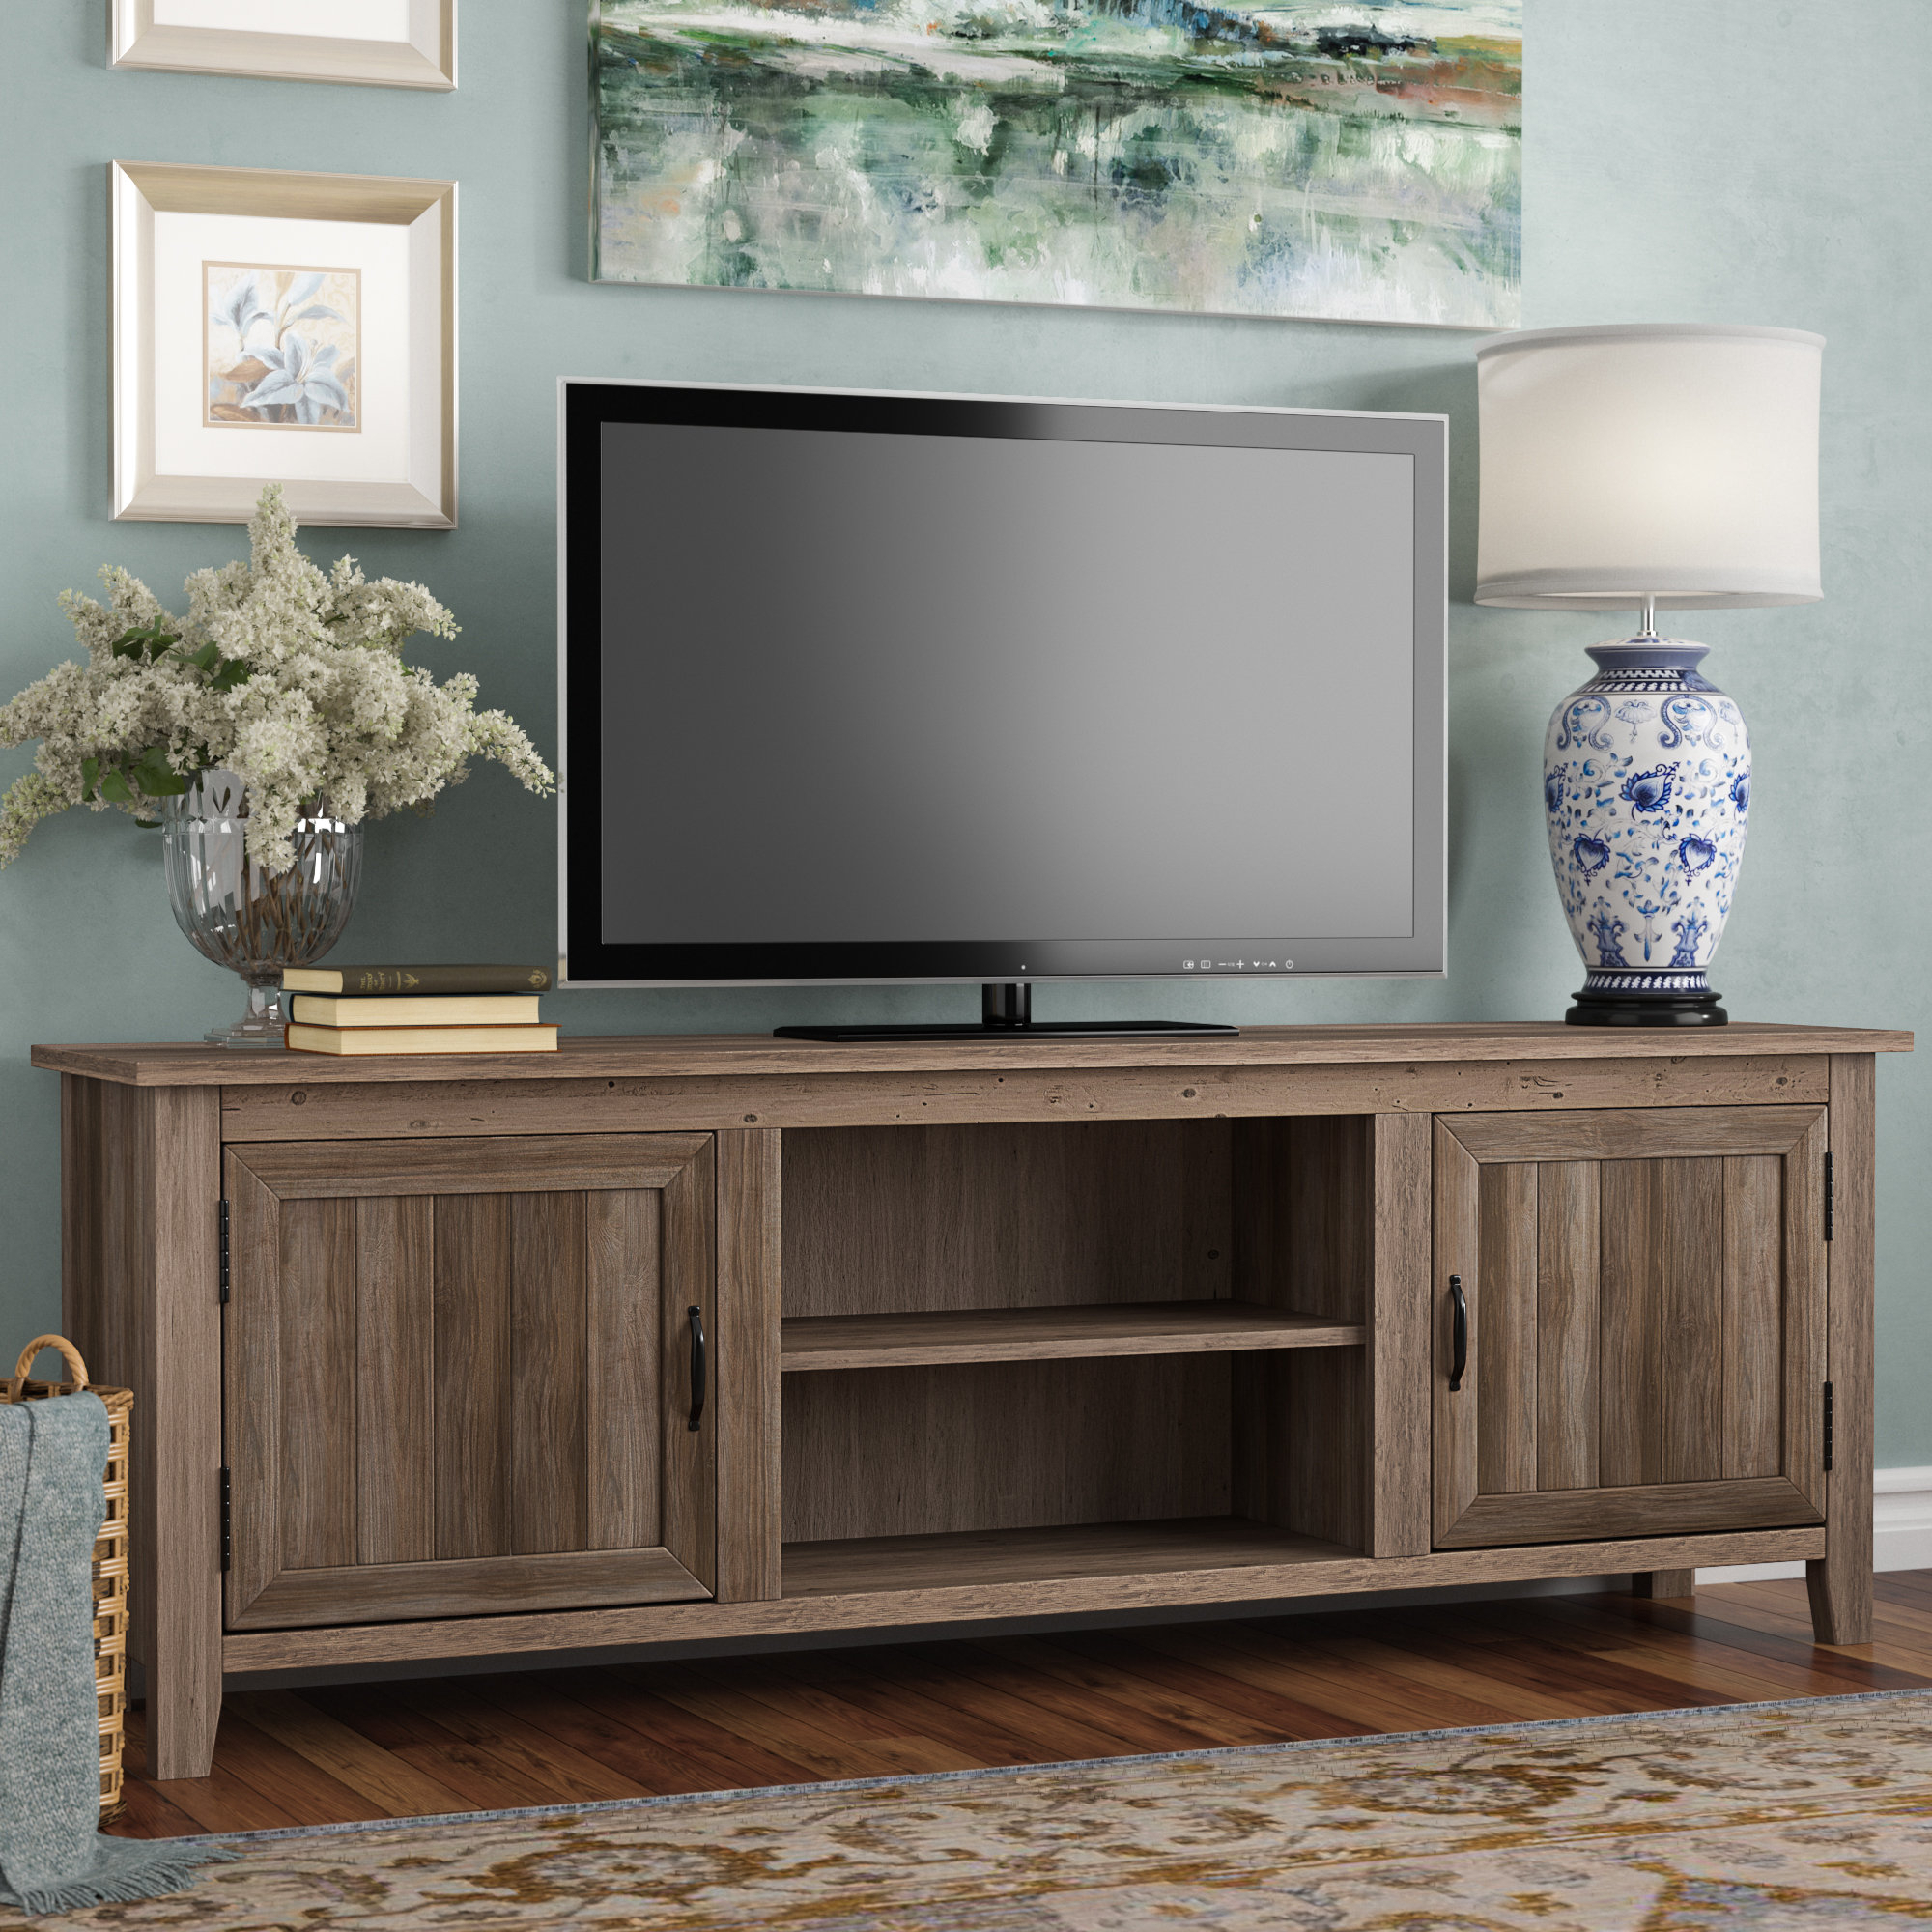 "Inspiration about Vintage Tv Stand | Wayfair With 2017 Colefax Vintage Tv Stands For Tvs Up To 78"" (#6 of 20)"